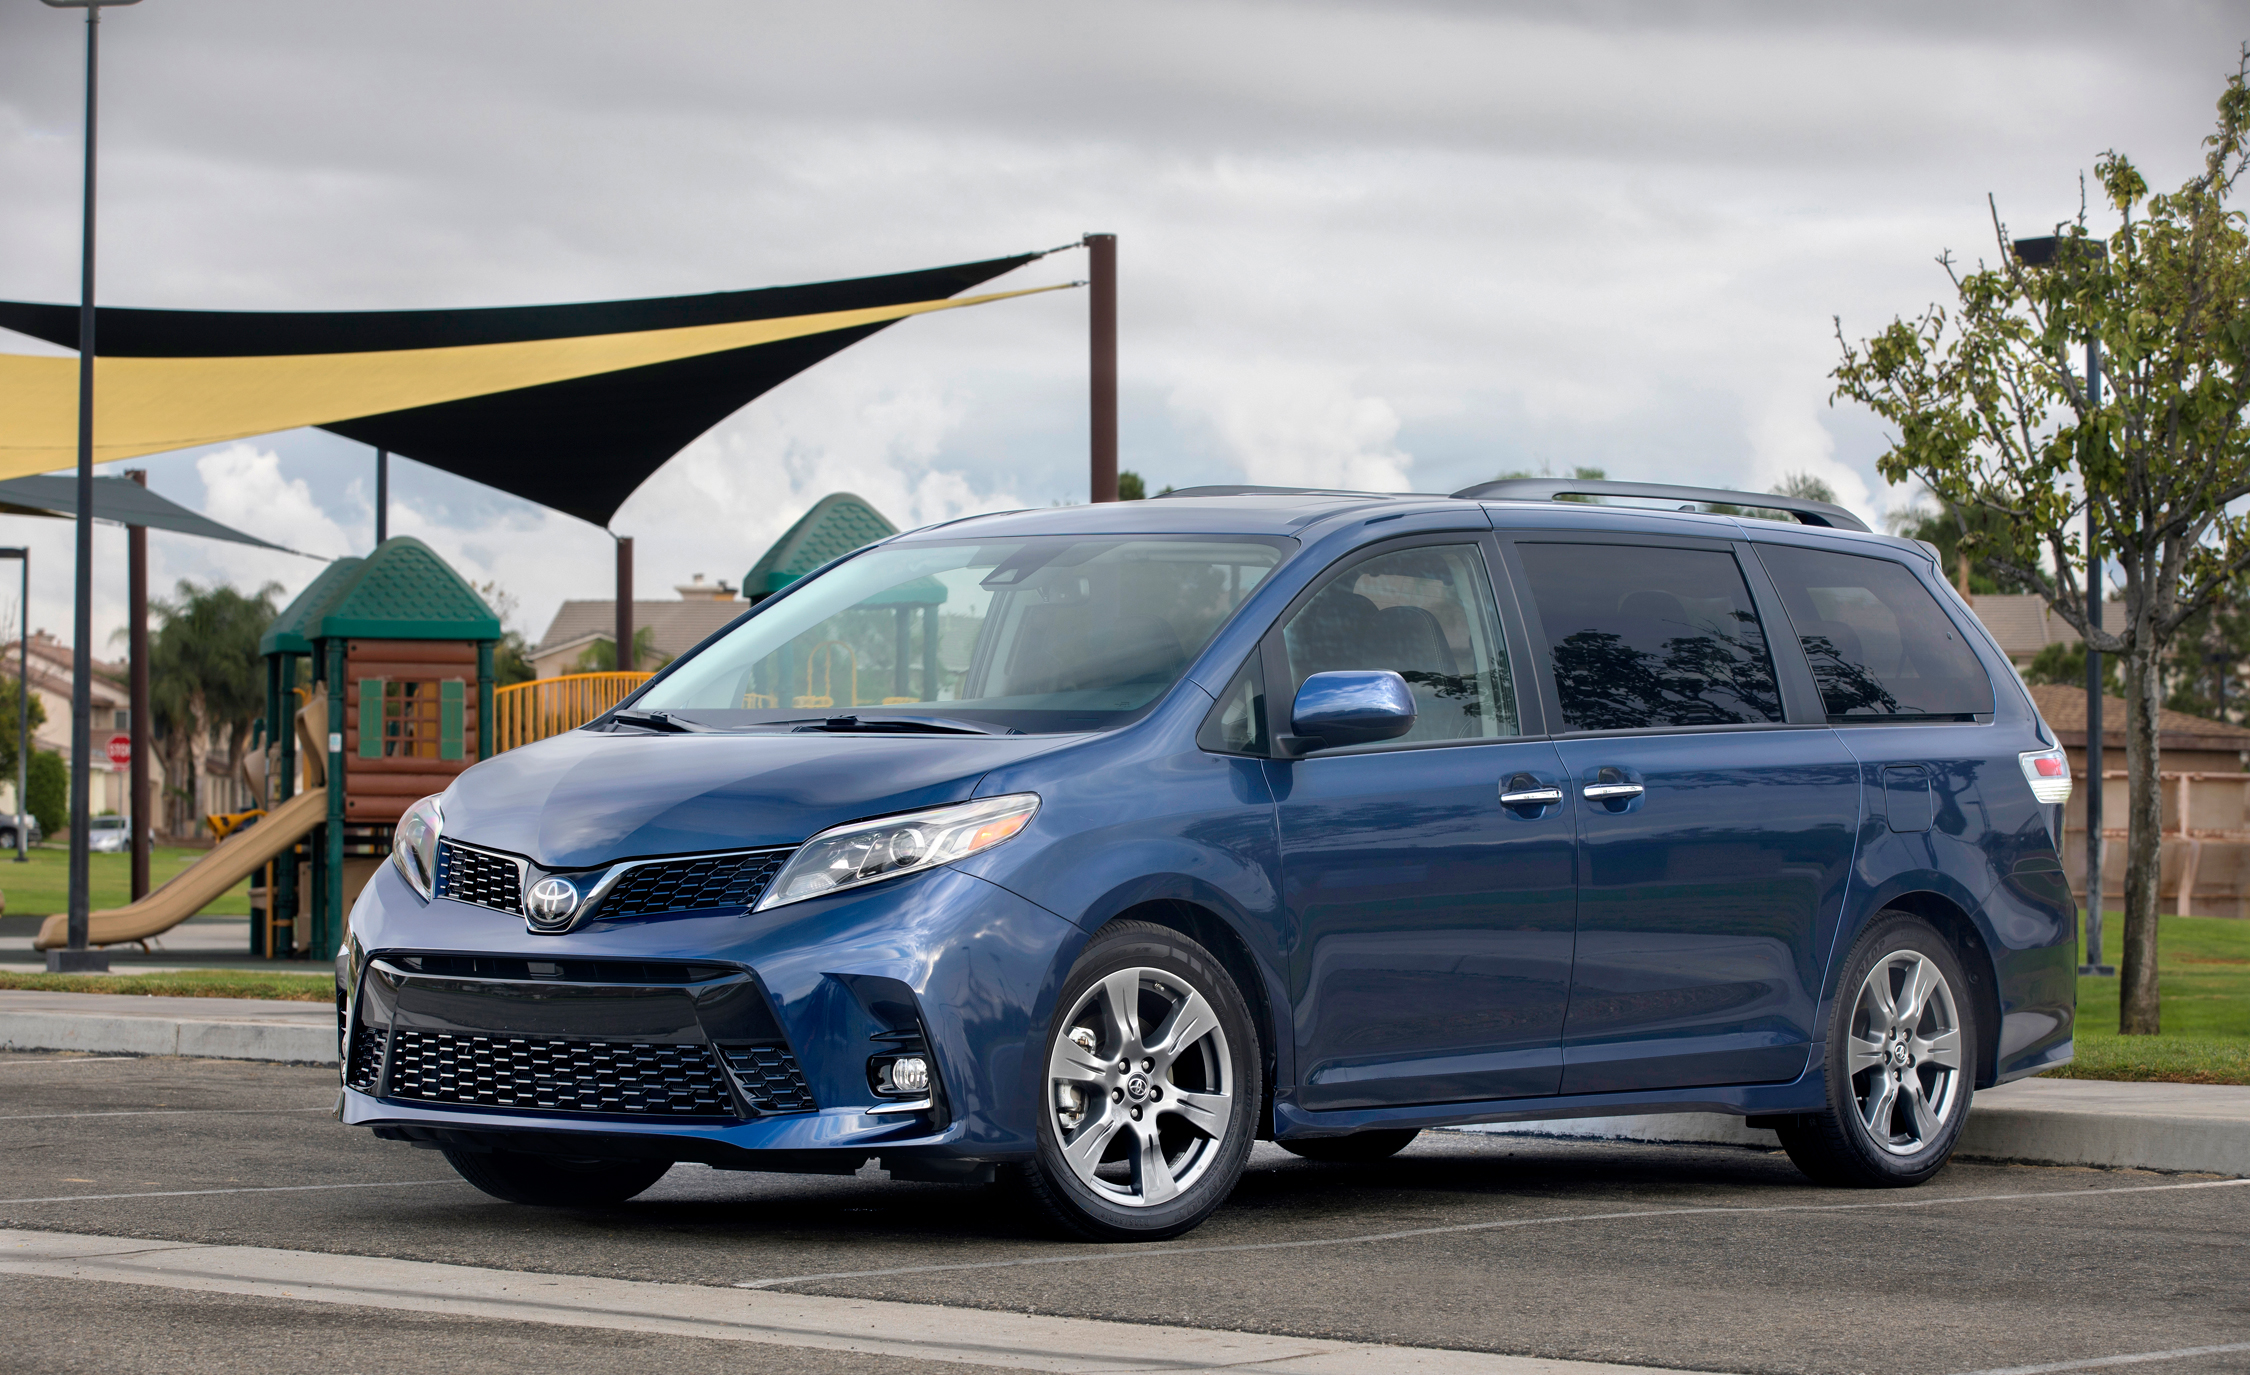 2018-toyota-sienna-fuel-economy-review-car-and-driver-photo-692100-s-original